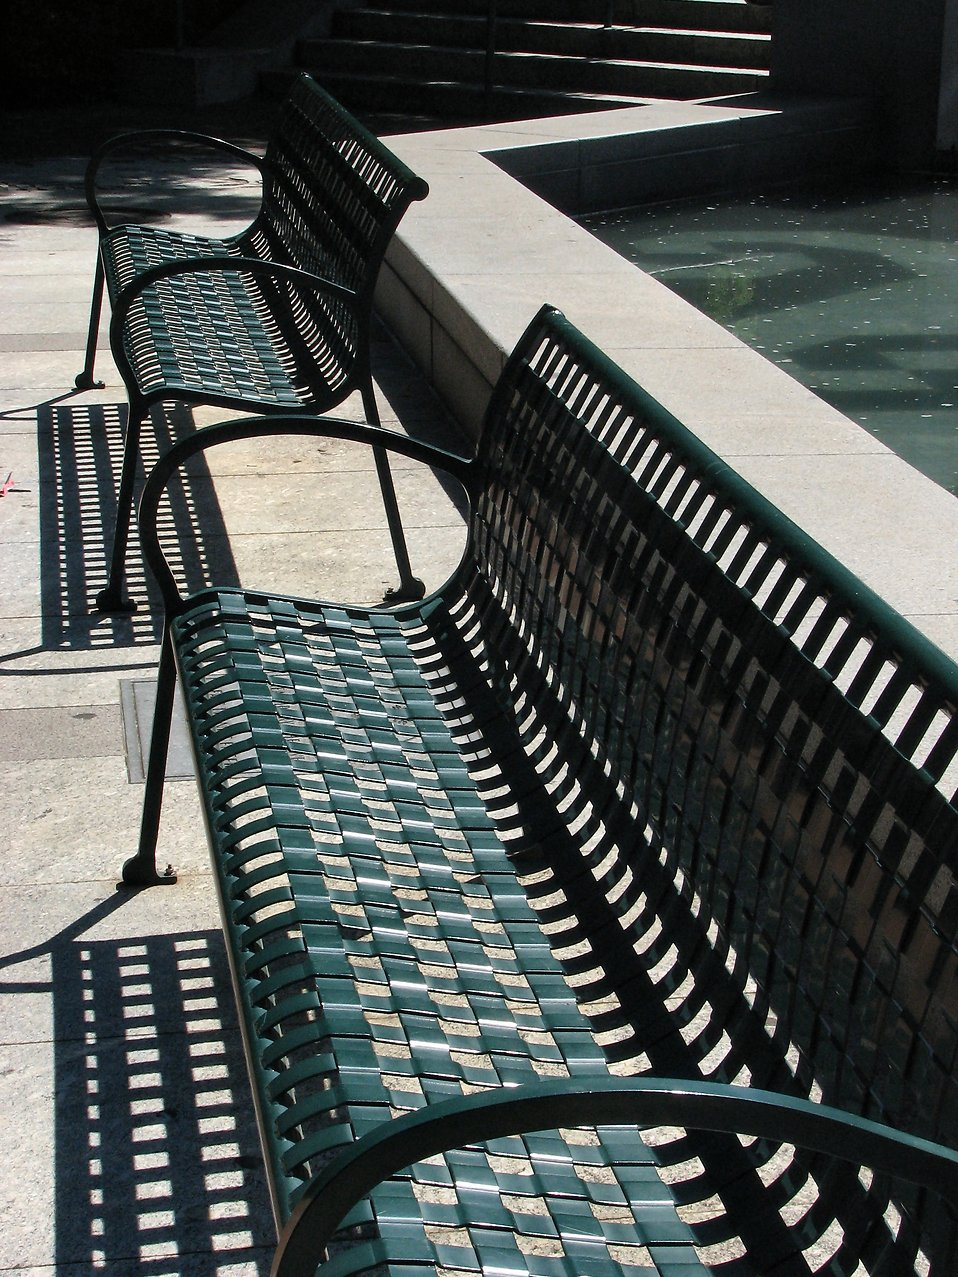 Park benches near a pool : Free Stock Photo